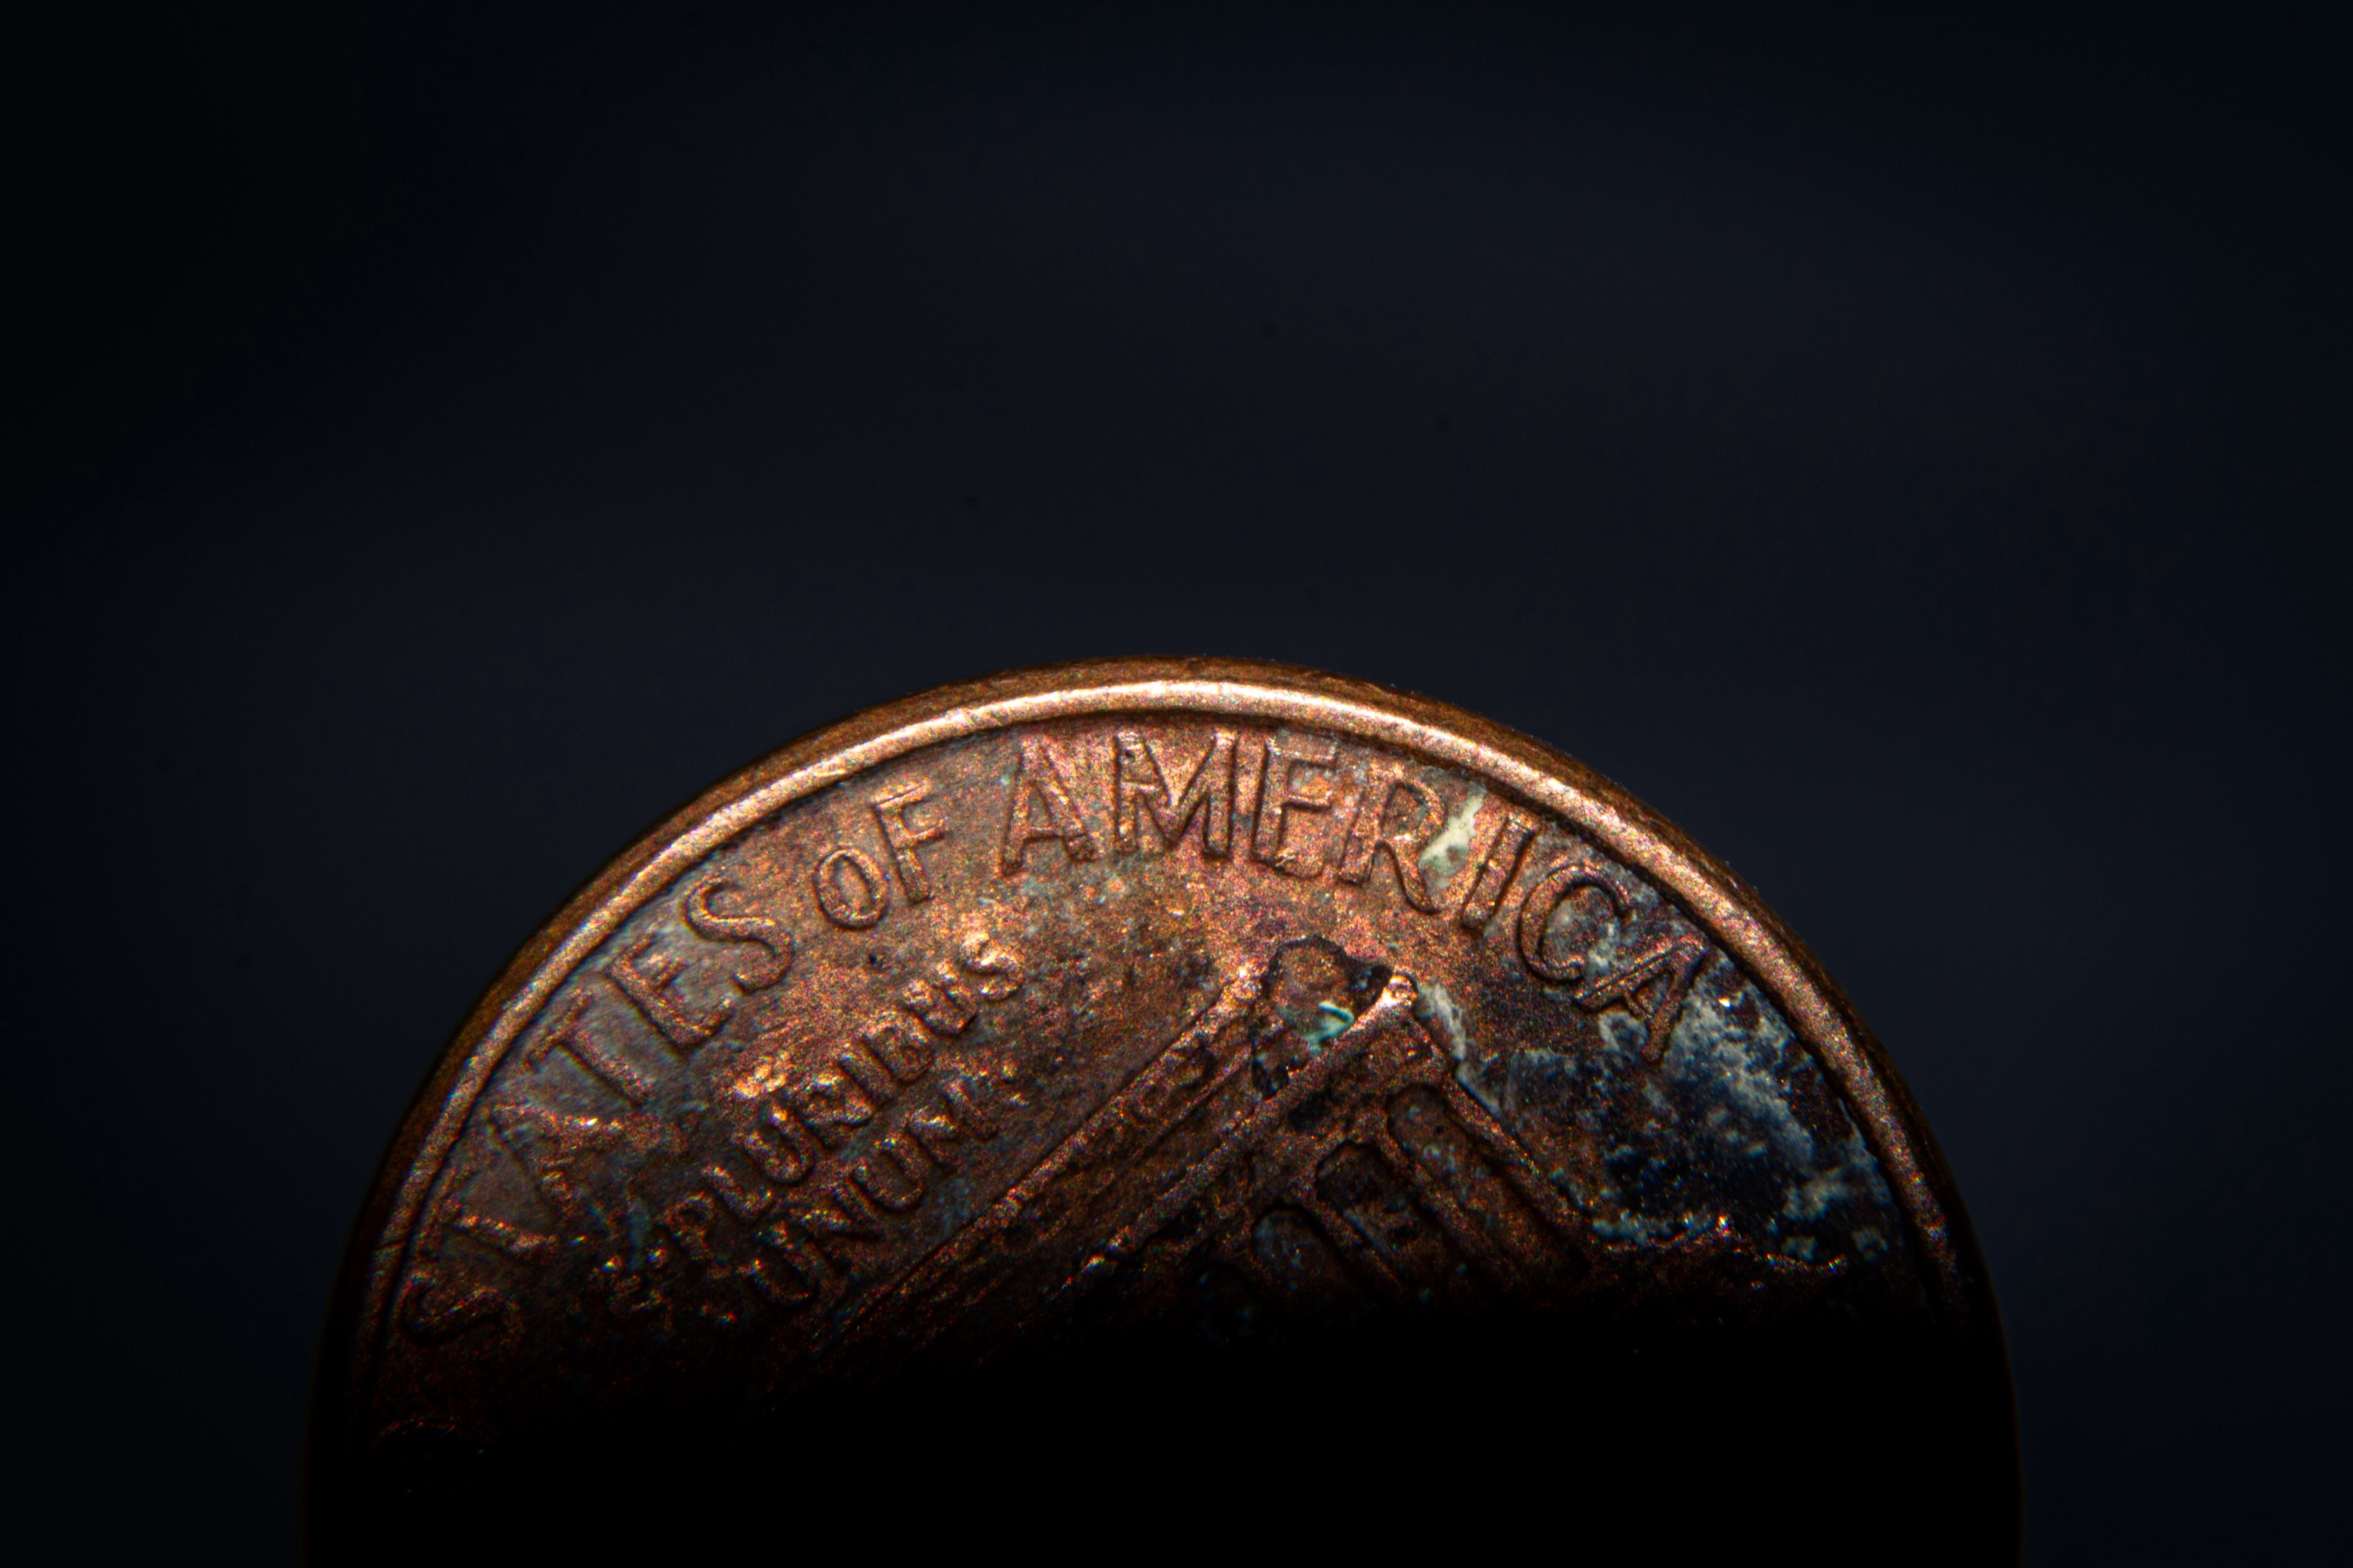 A close-up of a US penny